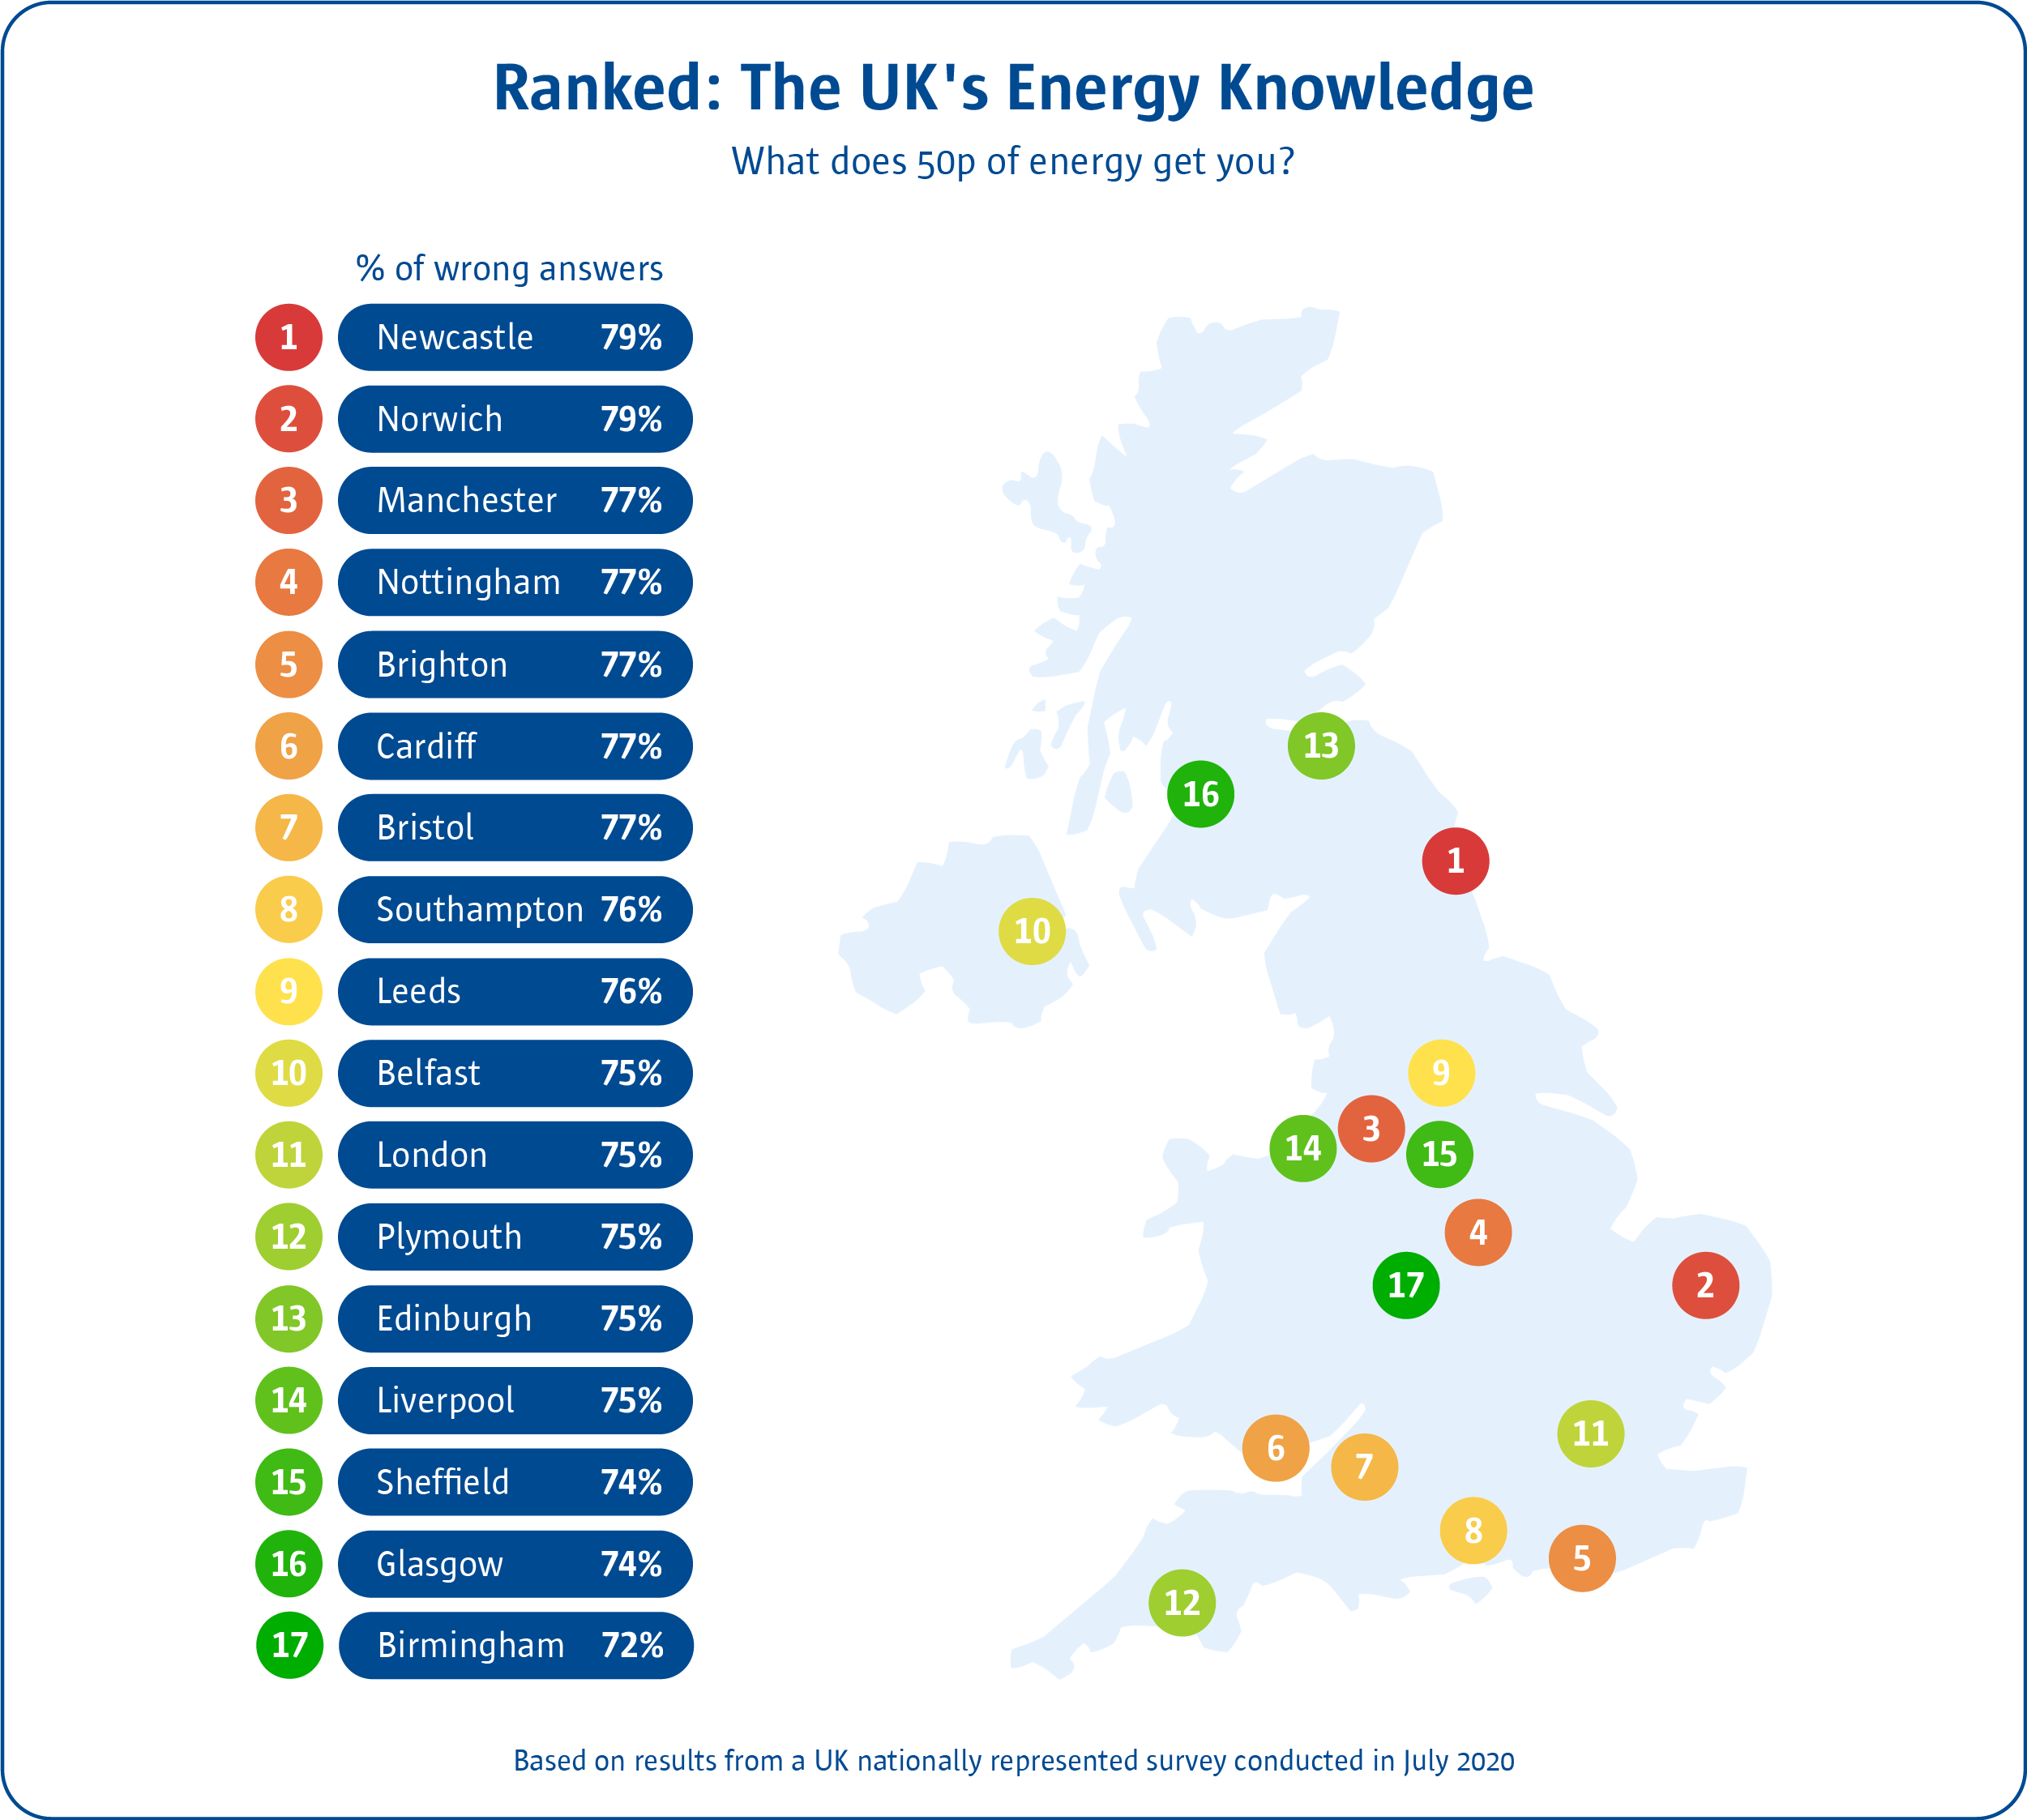 The UK cities least switched on about their energy use